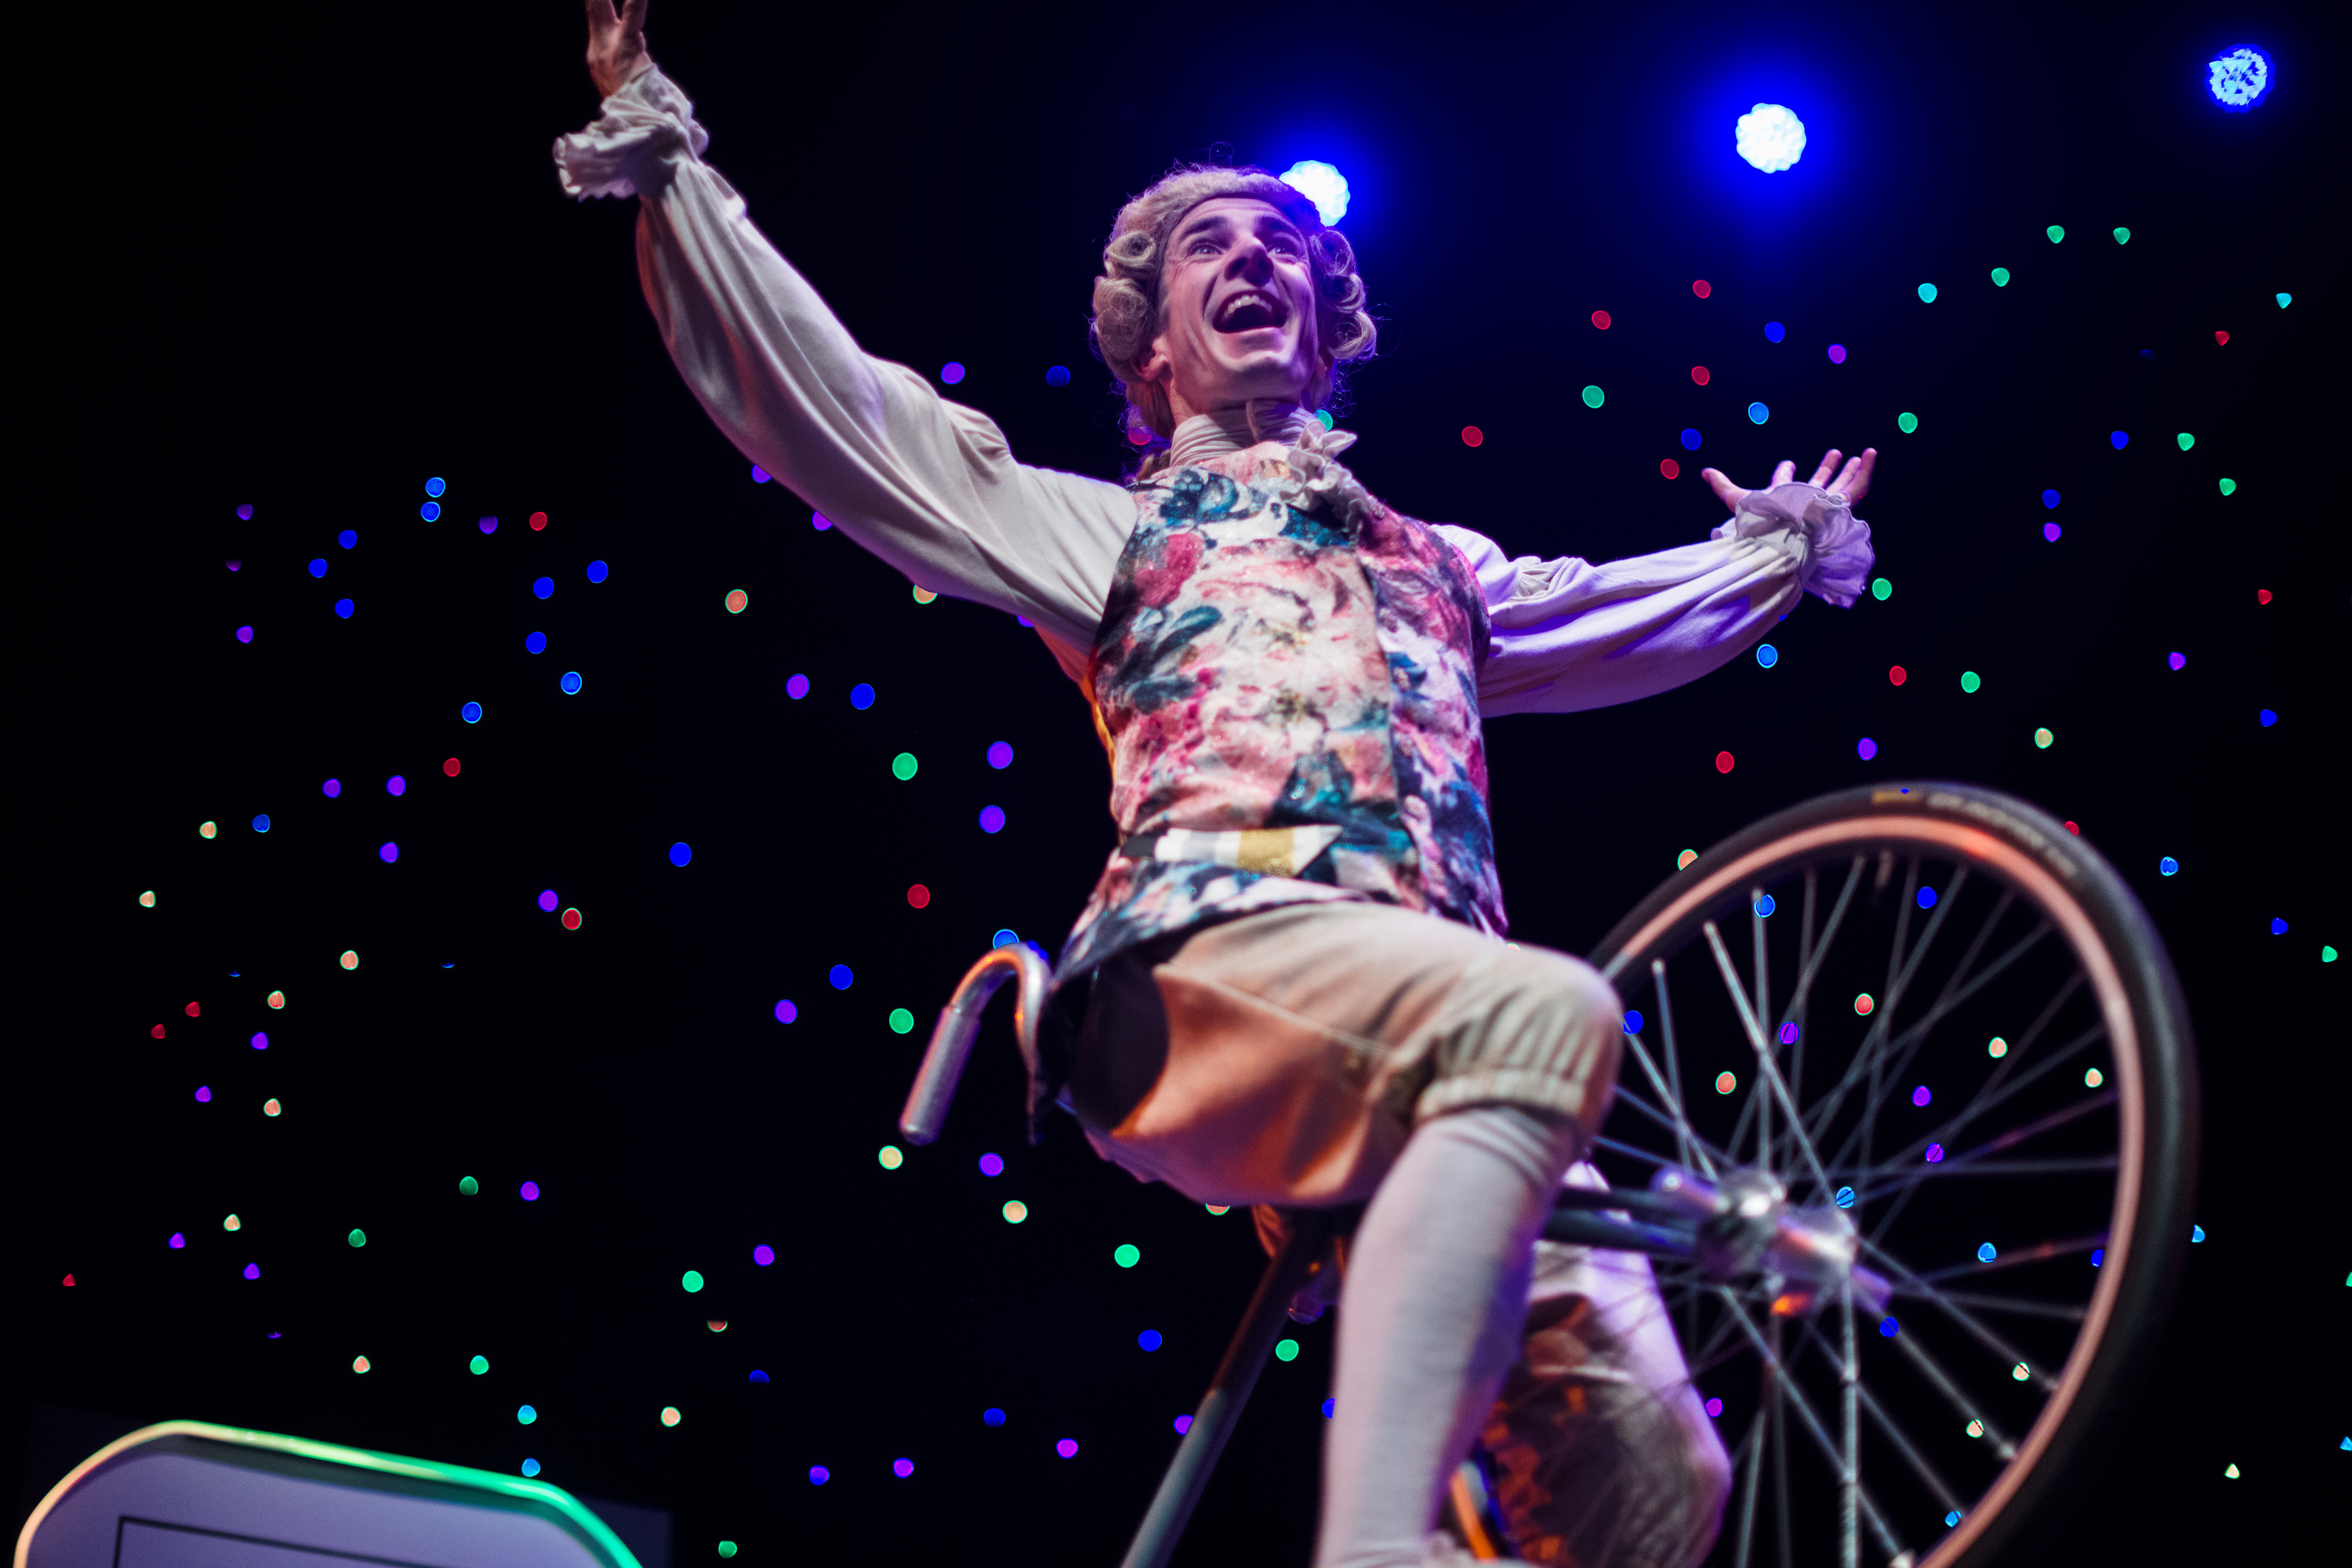 Man rides a unicycle dressed as Mozart.